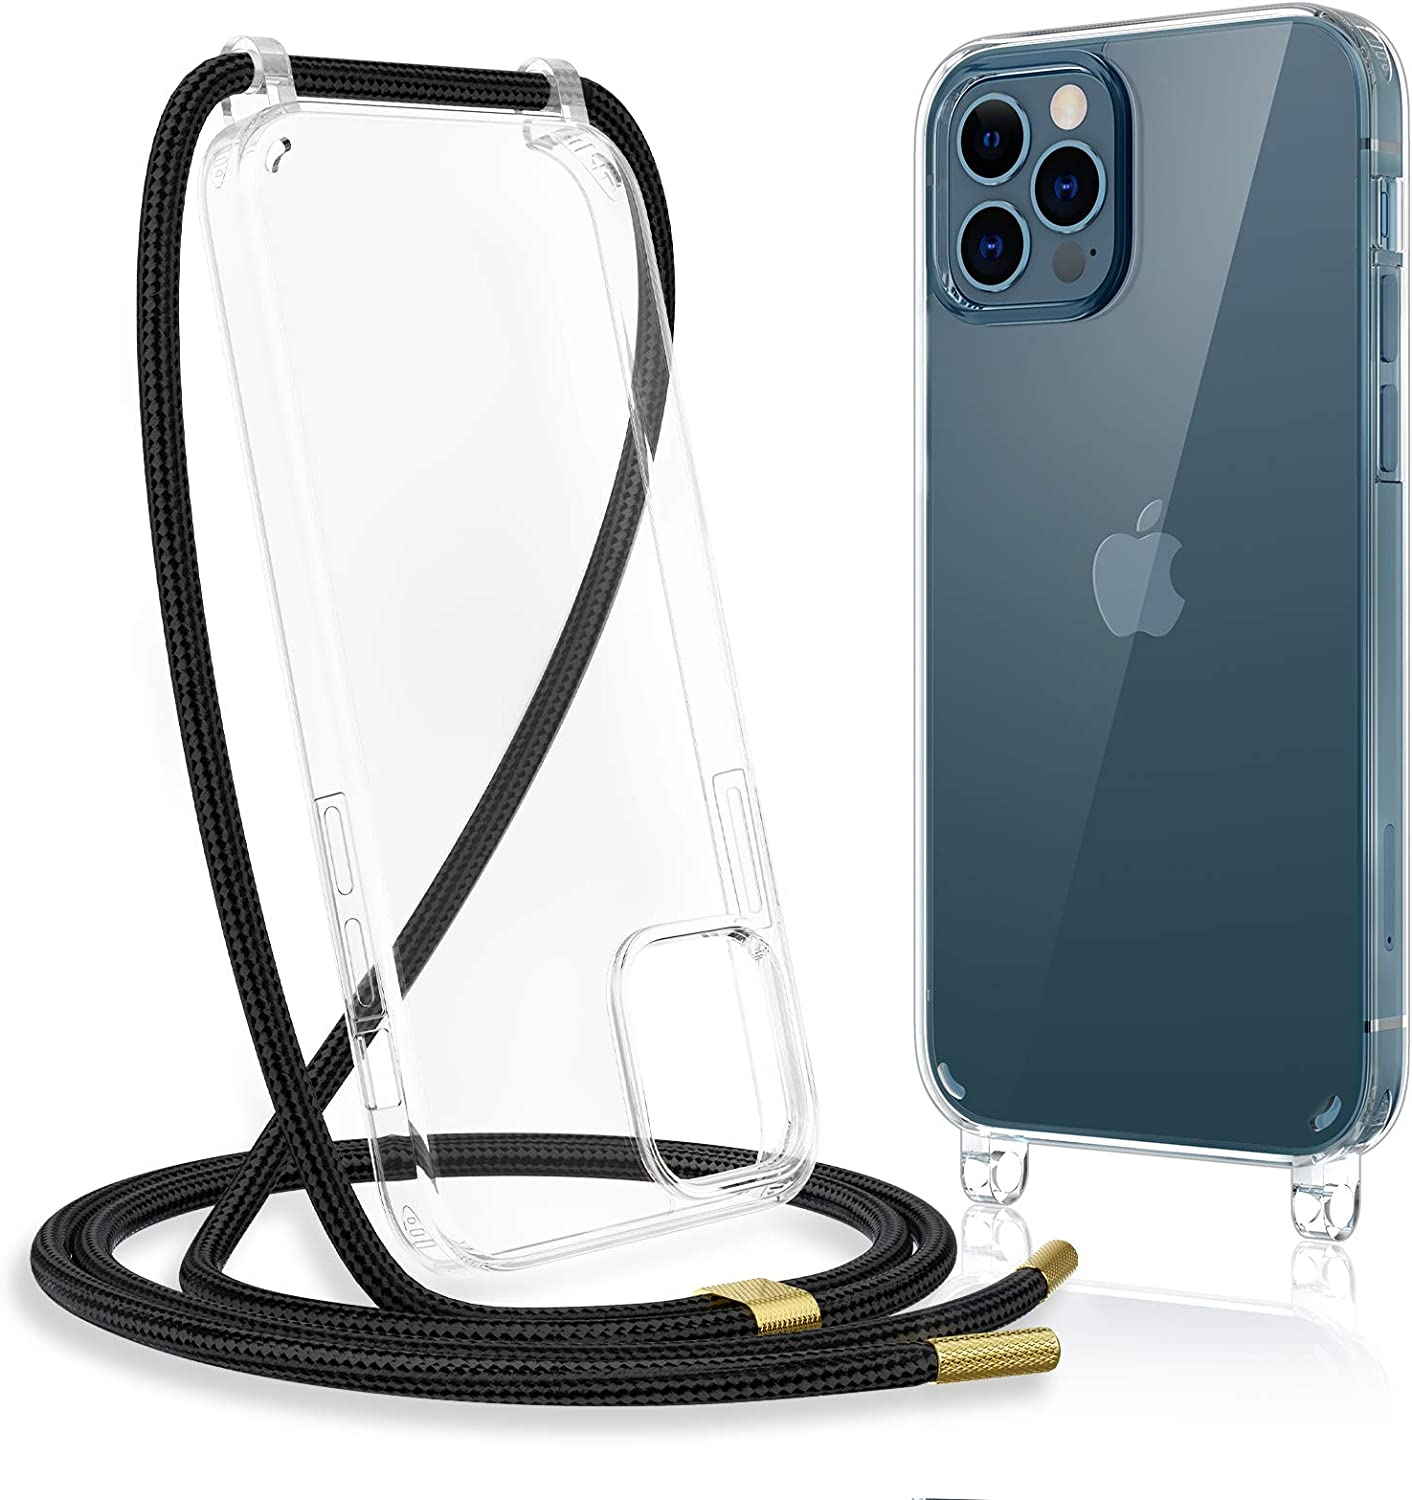 Clear iPhone 12 Pro Max Case with Crossbody Strap Adjustable Neck Lanyard Clear with Design Shockproof Protective Case for iPhone 12 Pro Max 6.7 inches Caka Clear Case for iPhone 12 Pro Max